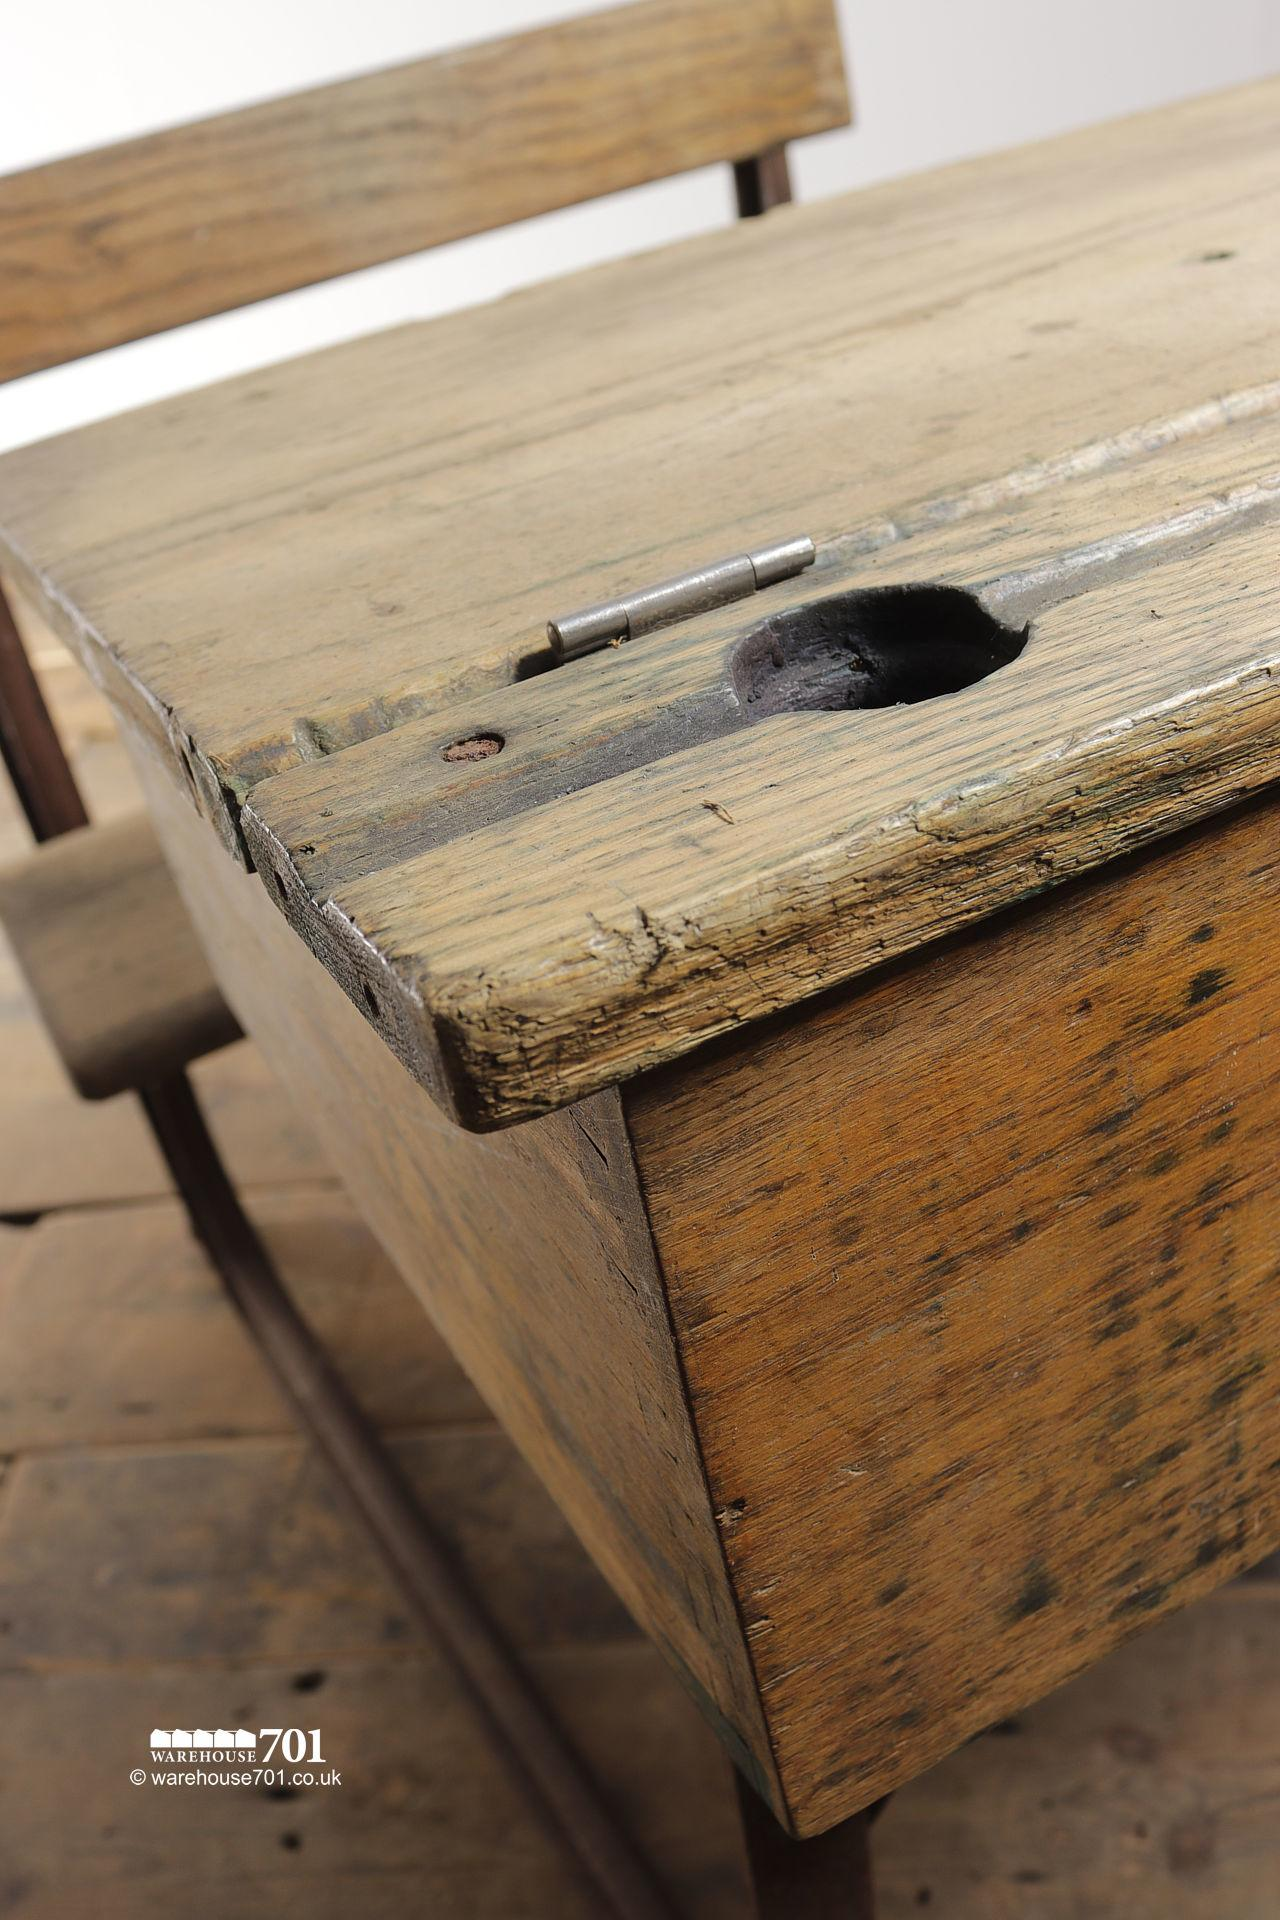 Reclaimed Wooden Childs School Desk and Seat #8